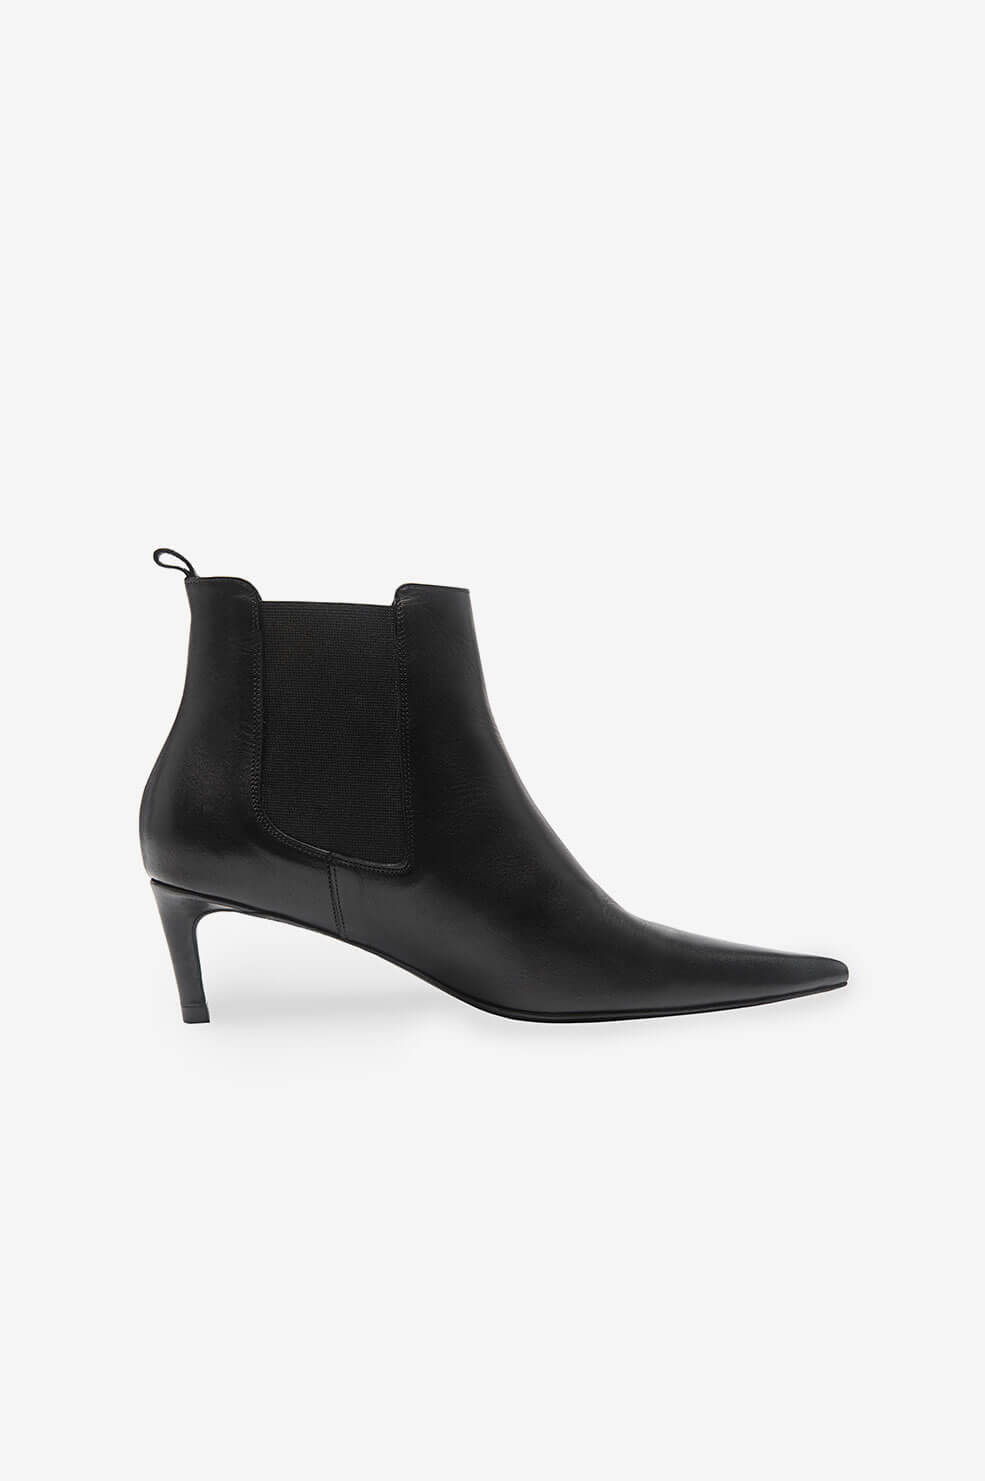 Stevie Boots - Black Leather